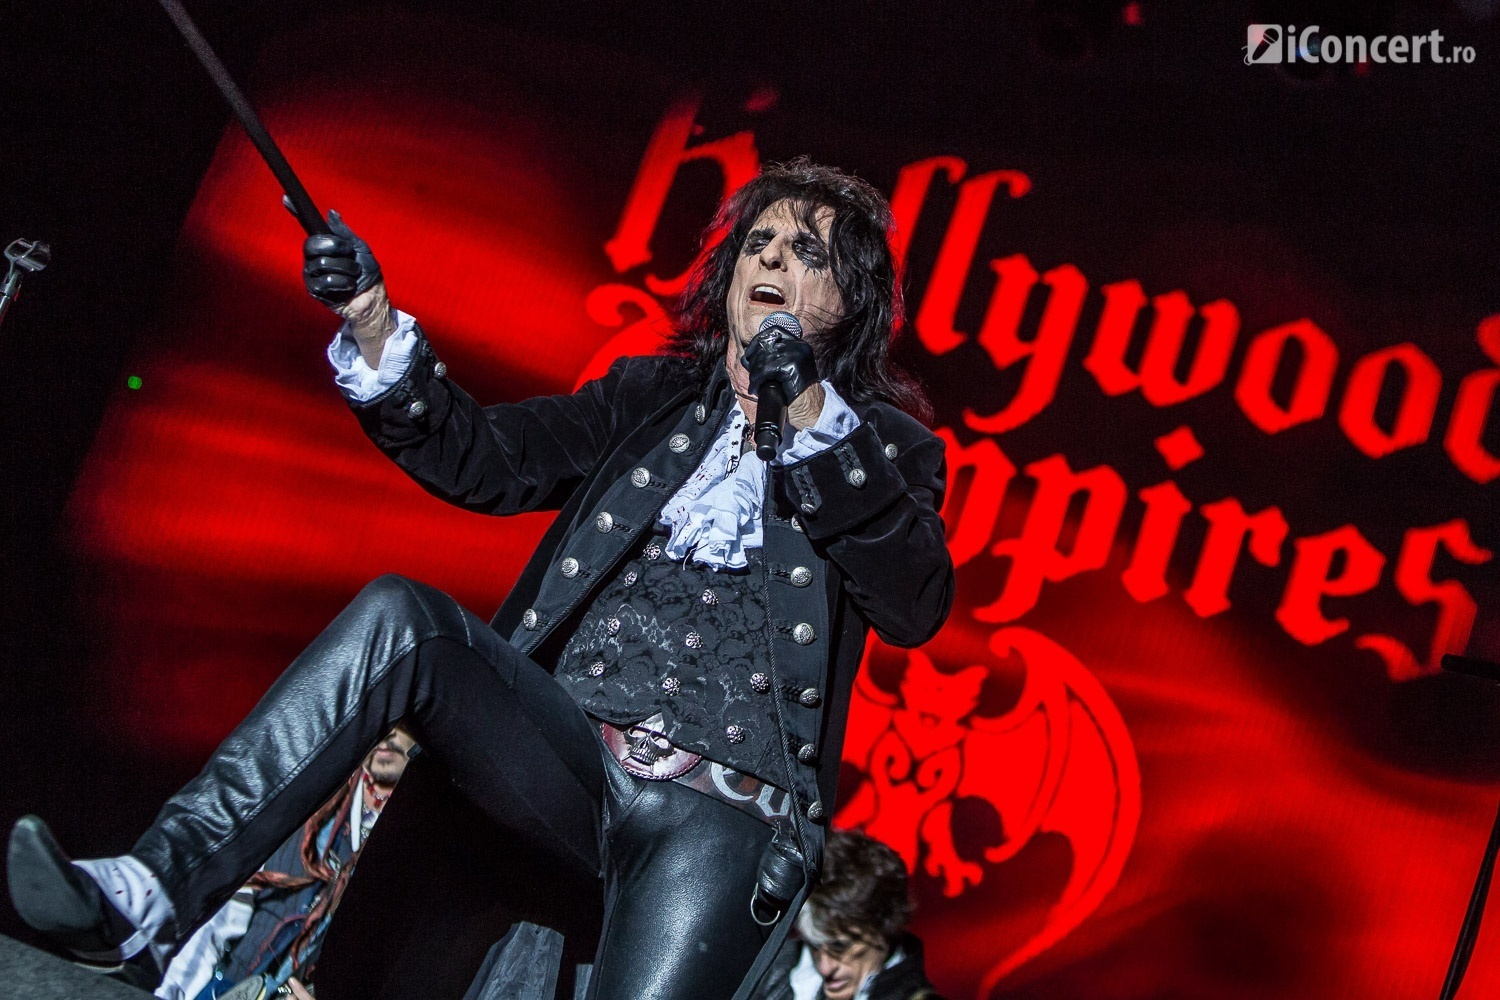 Alice Cooper - The Hollywood Vampires în concert la Bucureşti - Foto: Paul Voicu / iConcert.ro